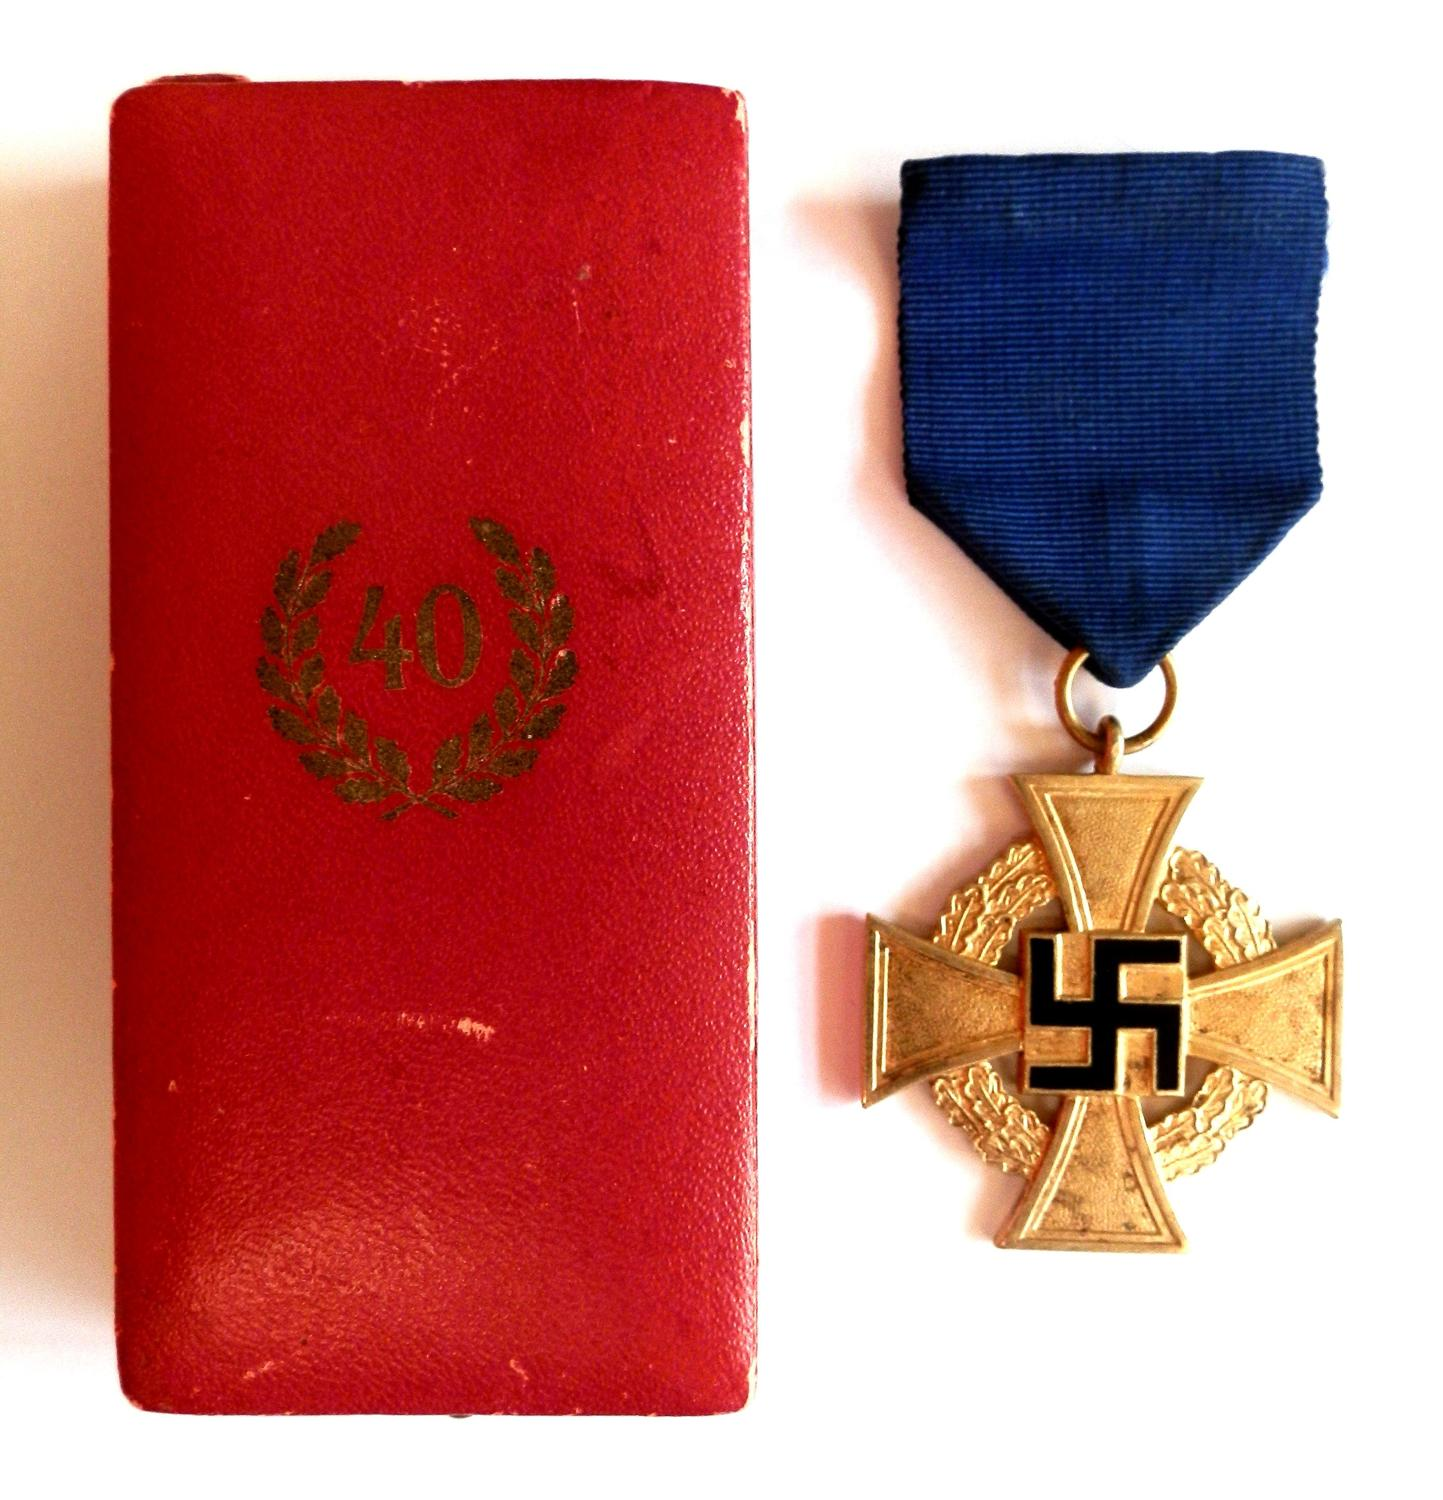 Gold 40 Years Faithful Service Medal